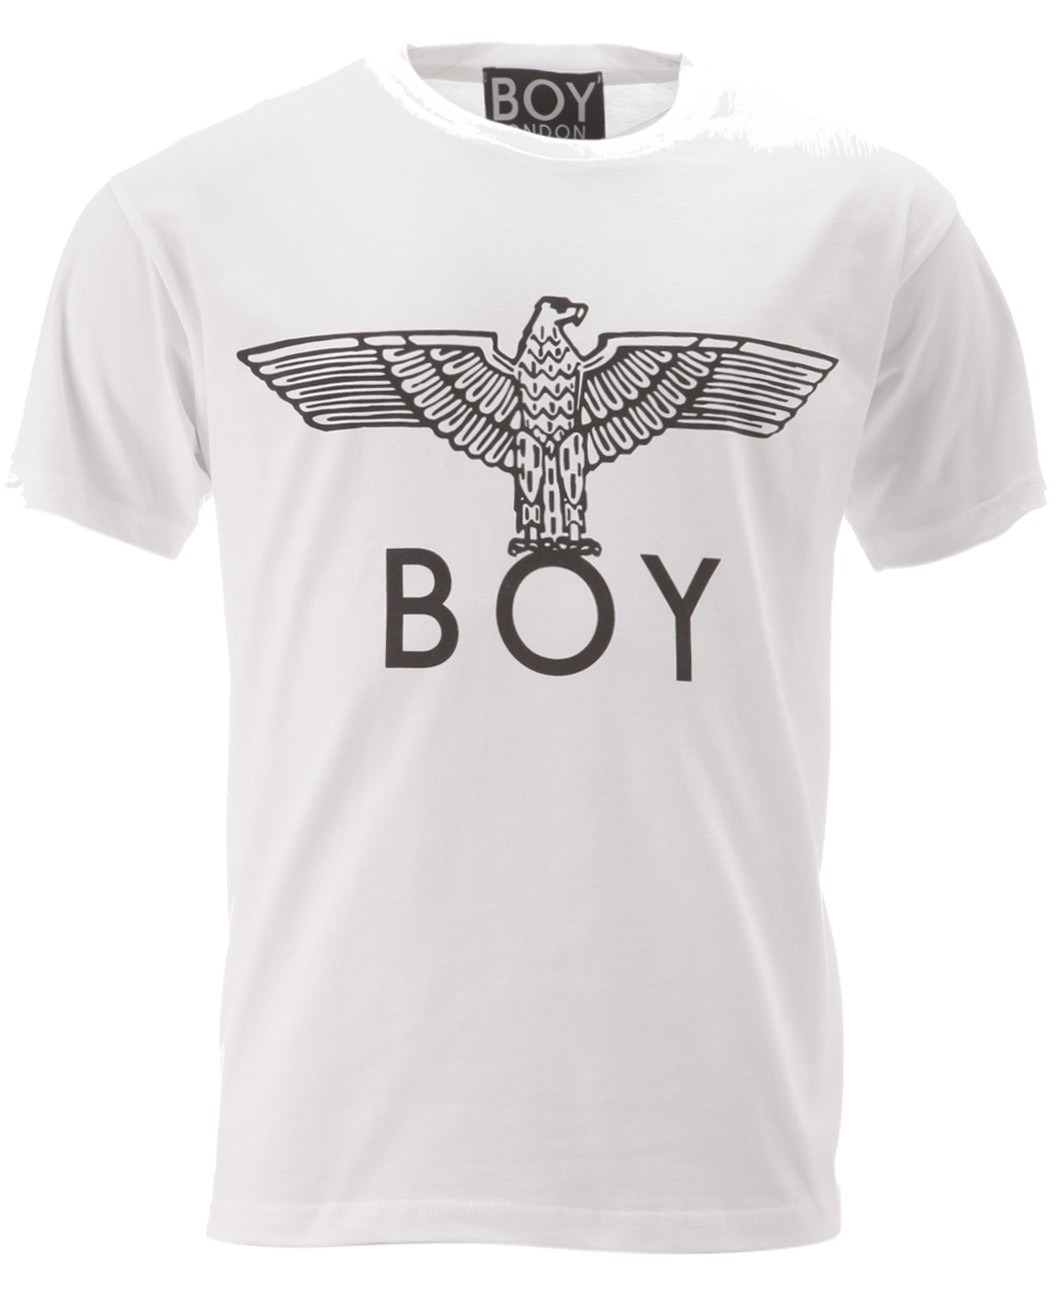 Boy London - Eagle T-Shirt - White - Sale